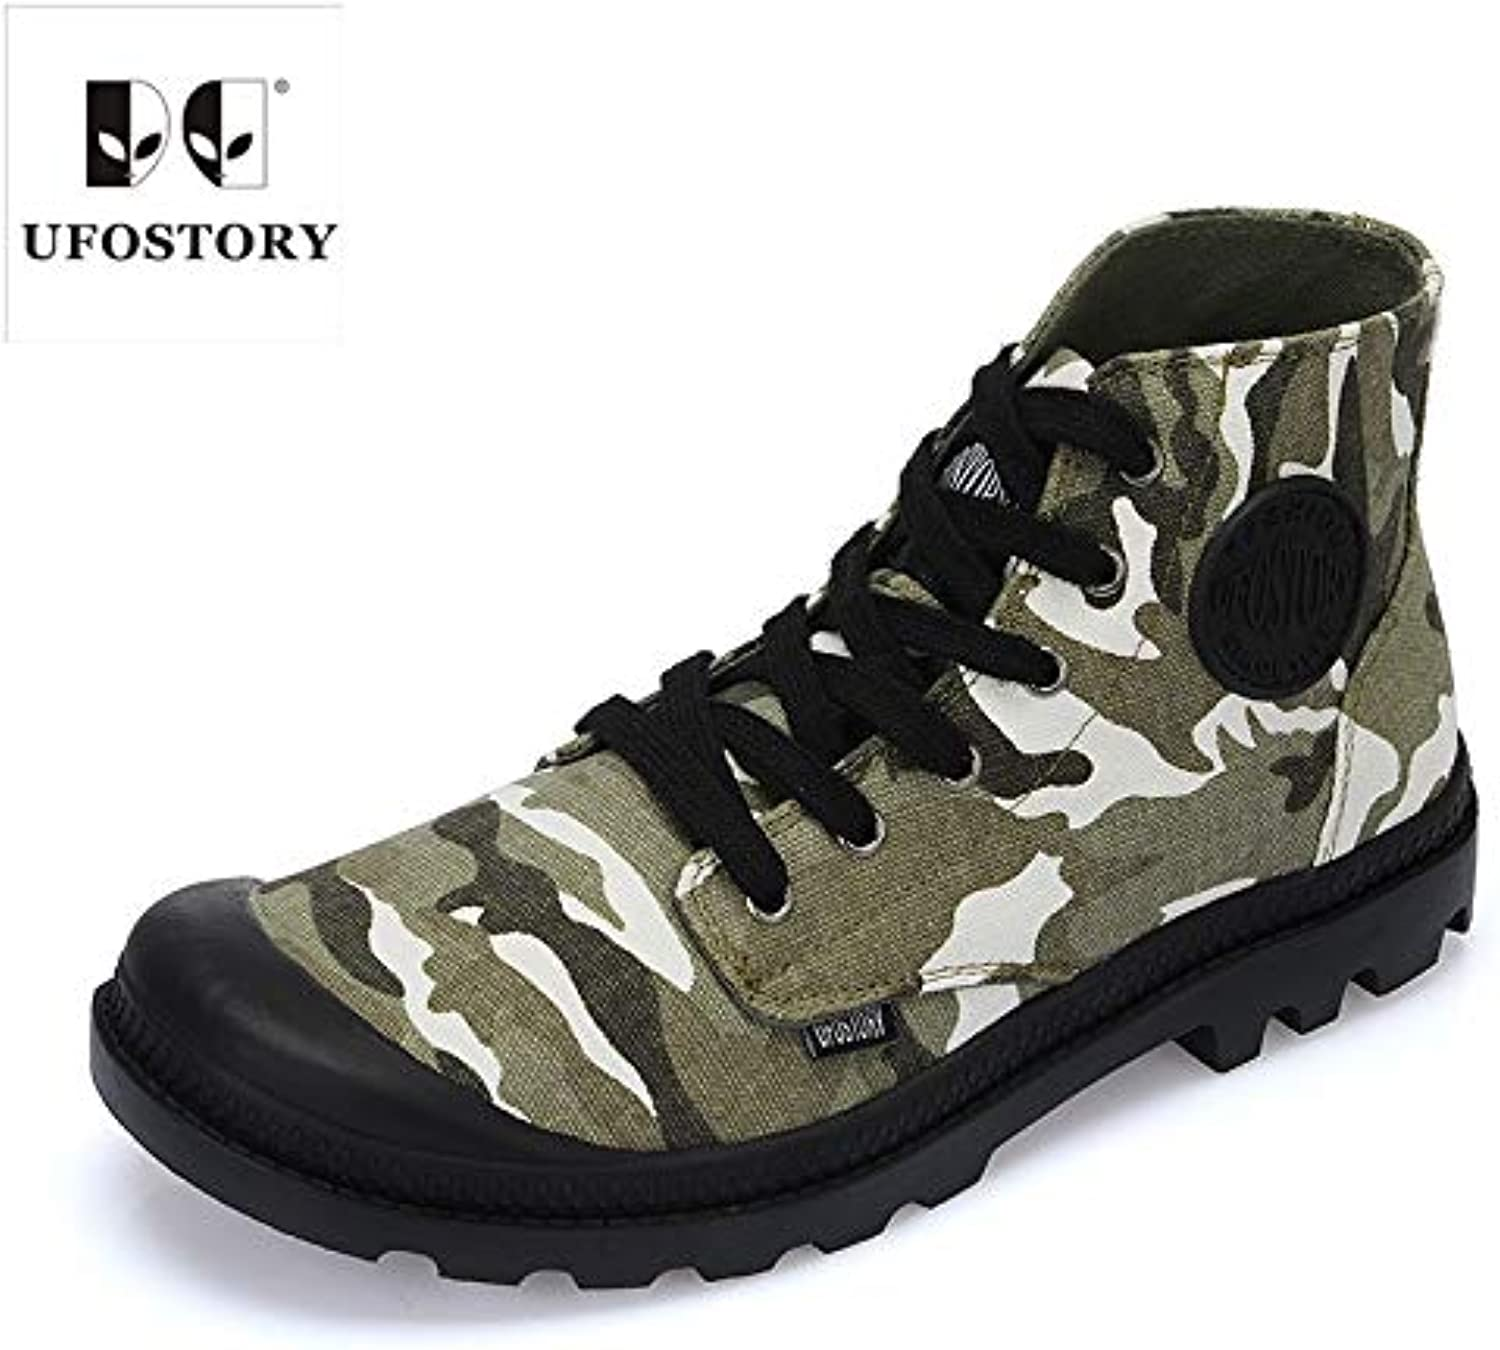 LOVDRAM Boots Men's Camouflage High shoes Men'S Wild Fashion Canvas shoes Men'S Fashion Men'S shoes shoes Breathable Round Head